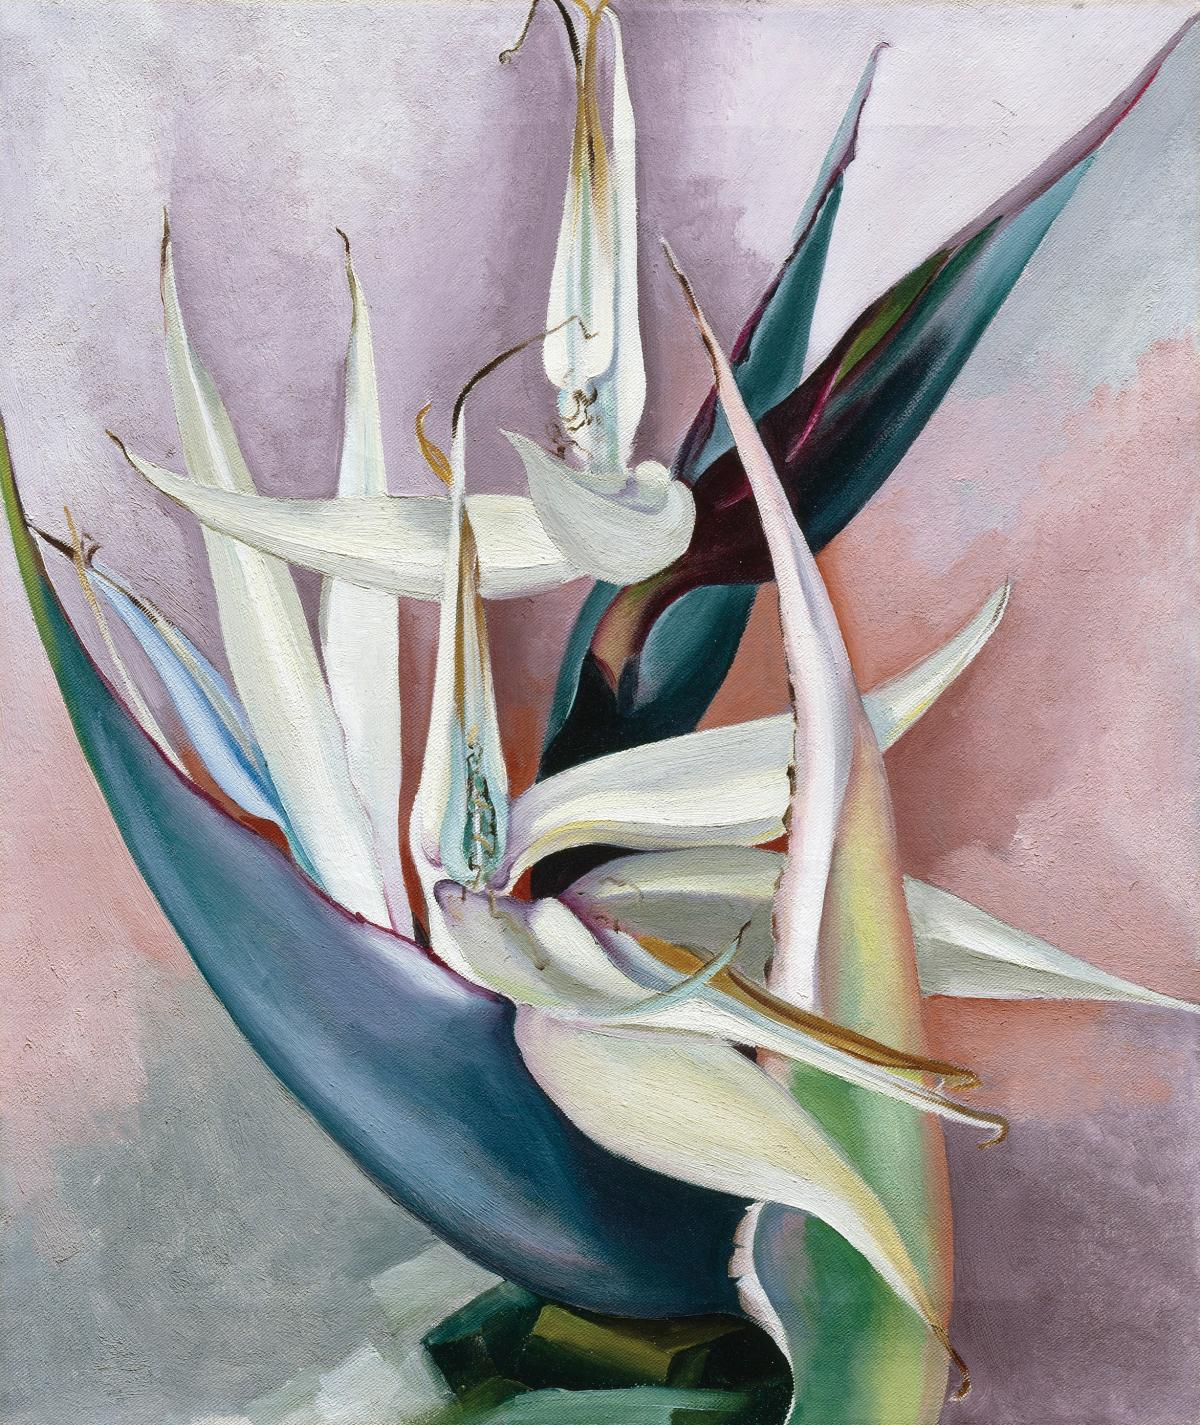 White Bird of Paradise, 1939, by Georgia O'Keeffe